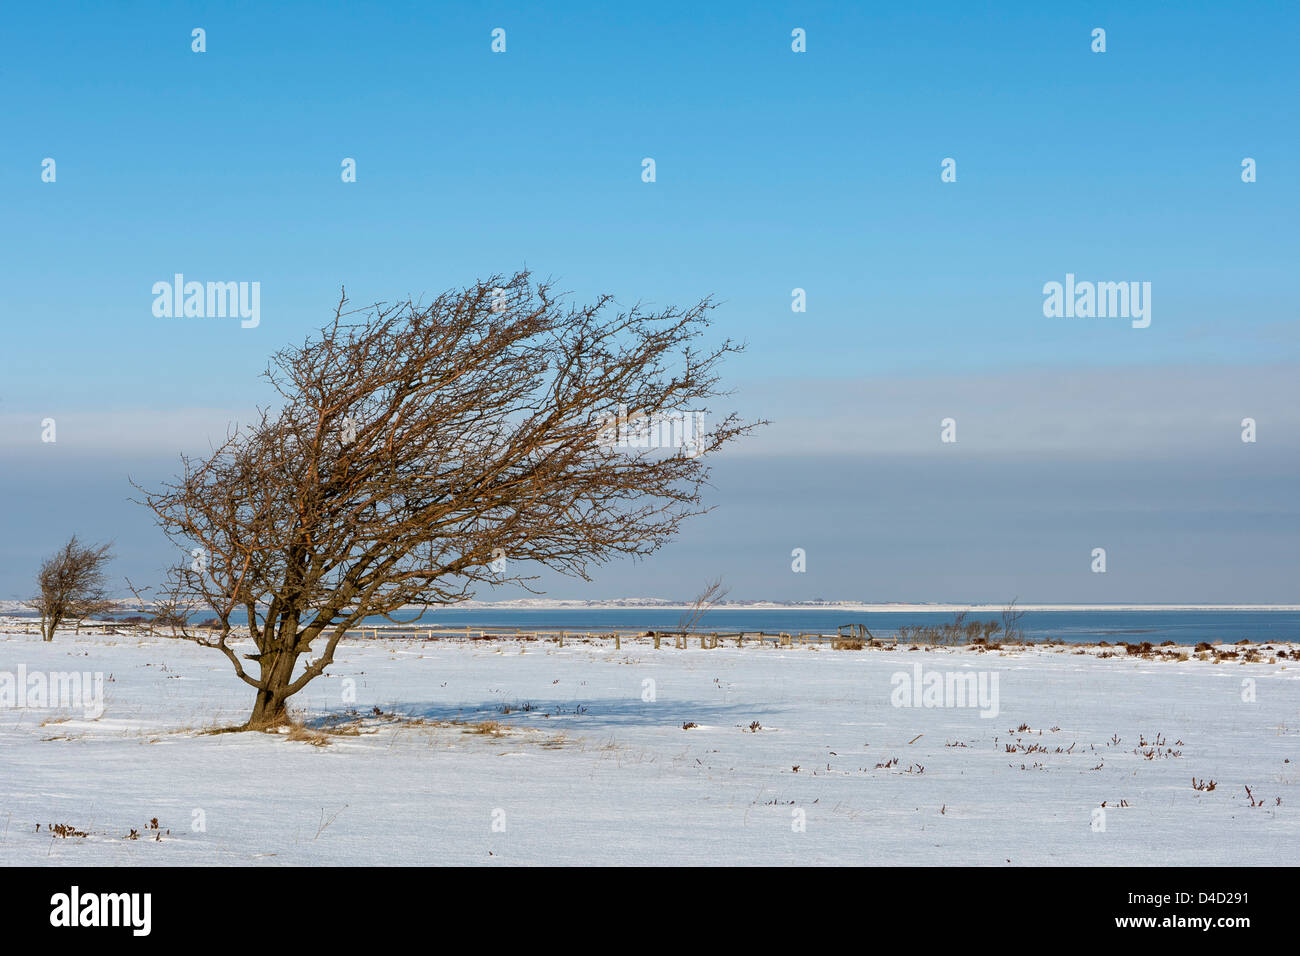 Warped tree in winter, Sylt, Germany - Stock Image